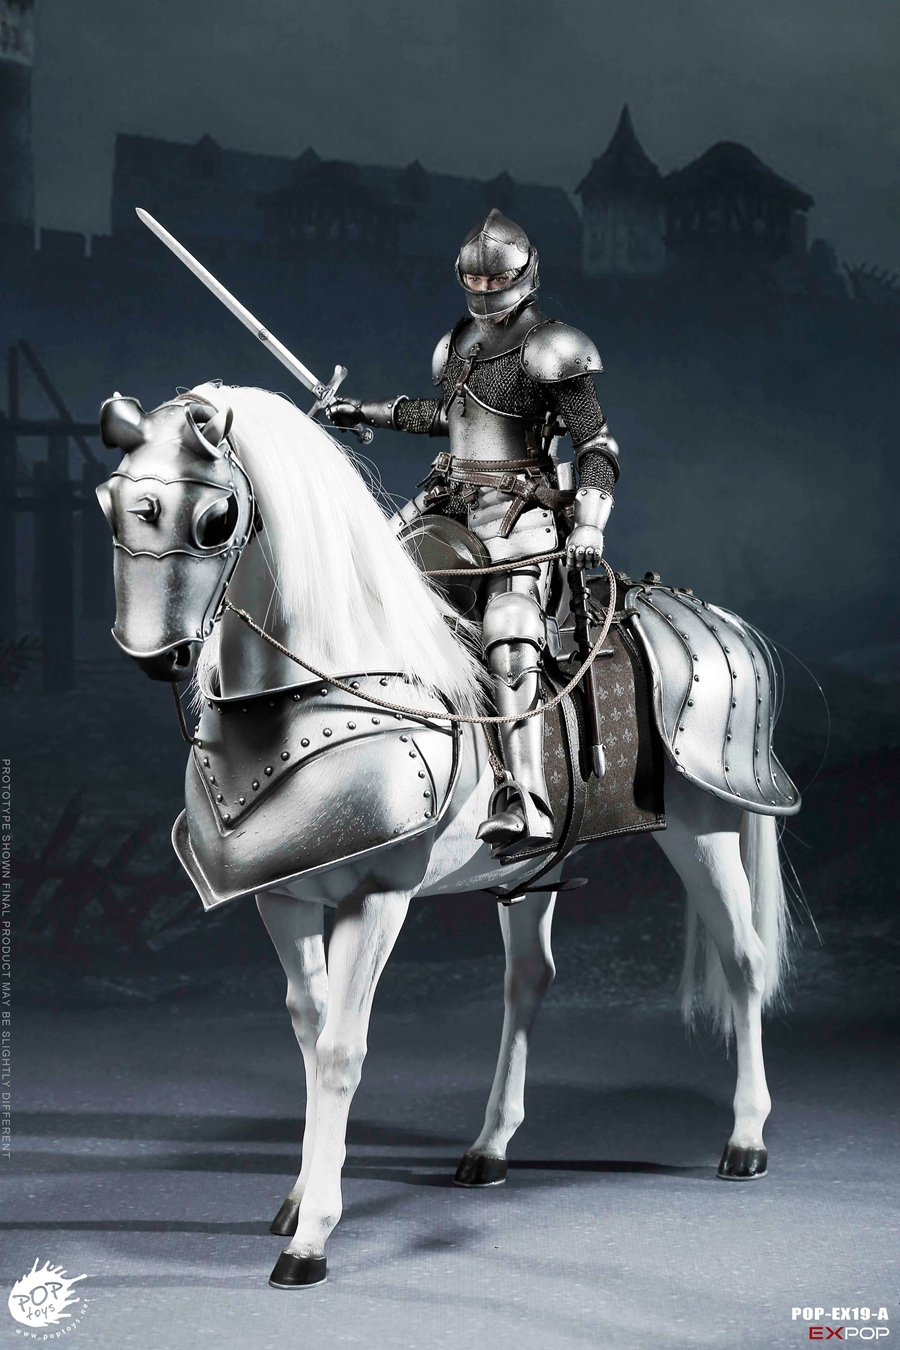 knight - NEW PRODUCT: POPTOYS New Products: 1/6 St. Knights - Assault Edition & Triumph Edition & Iron Armor (POP-EX19 ABC) 16391910